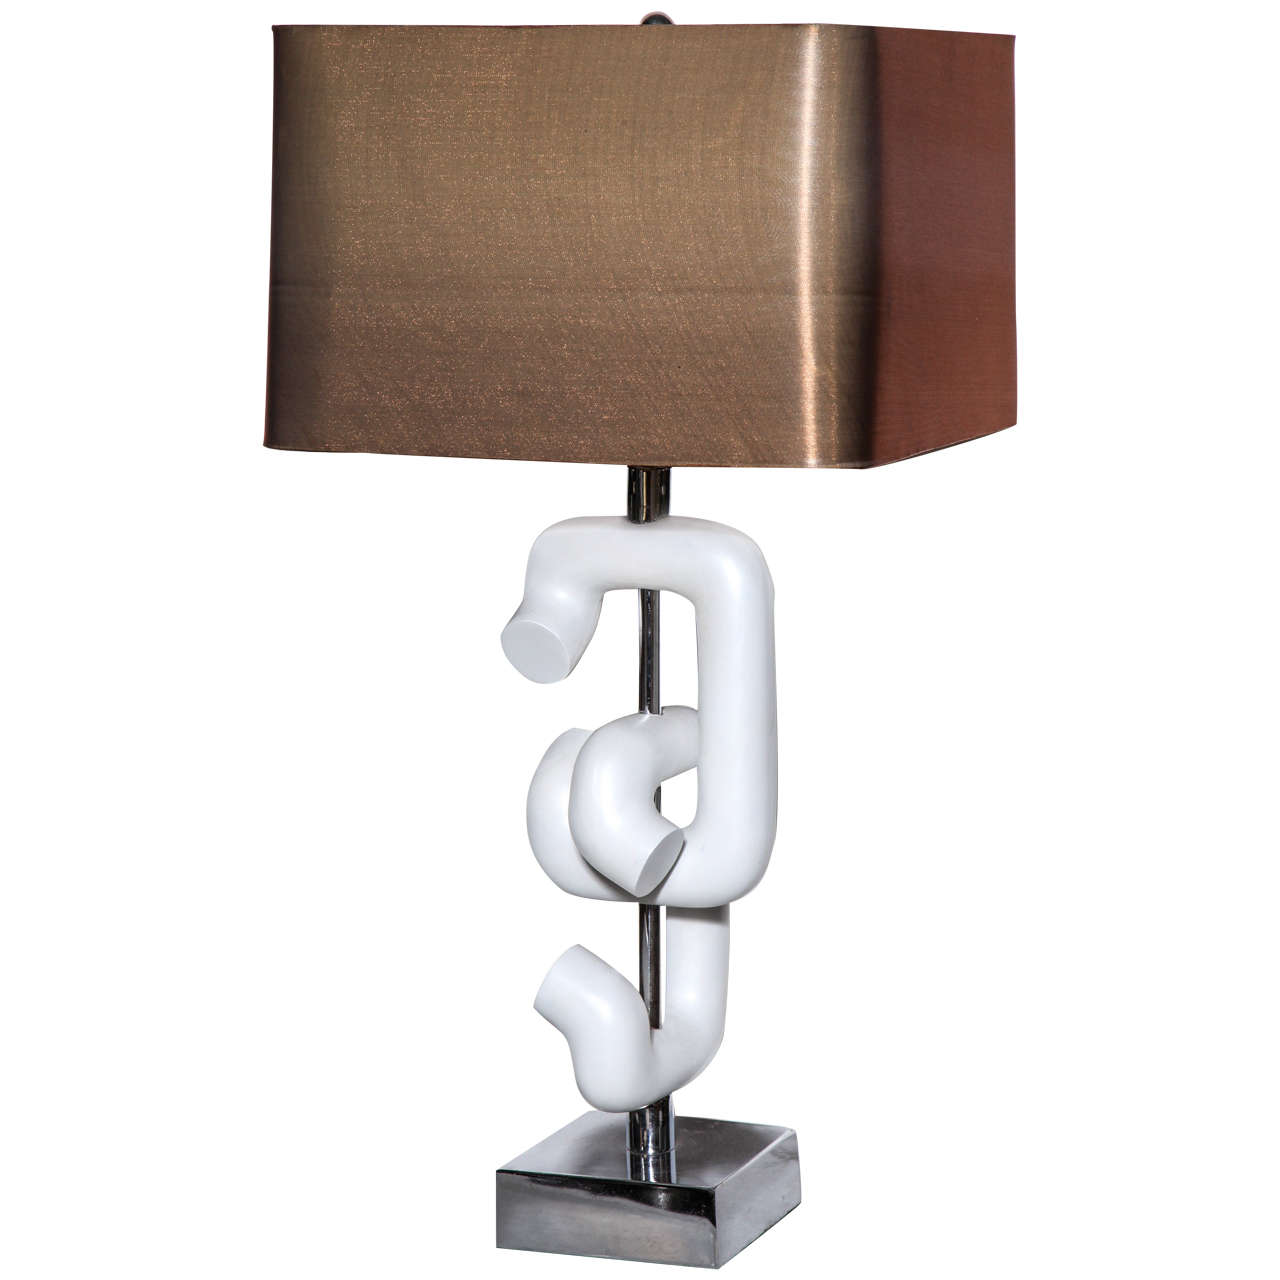 Robert Sonneman Interlocking Chrome & White Enamel Sculpture Table Lamp, 1960s